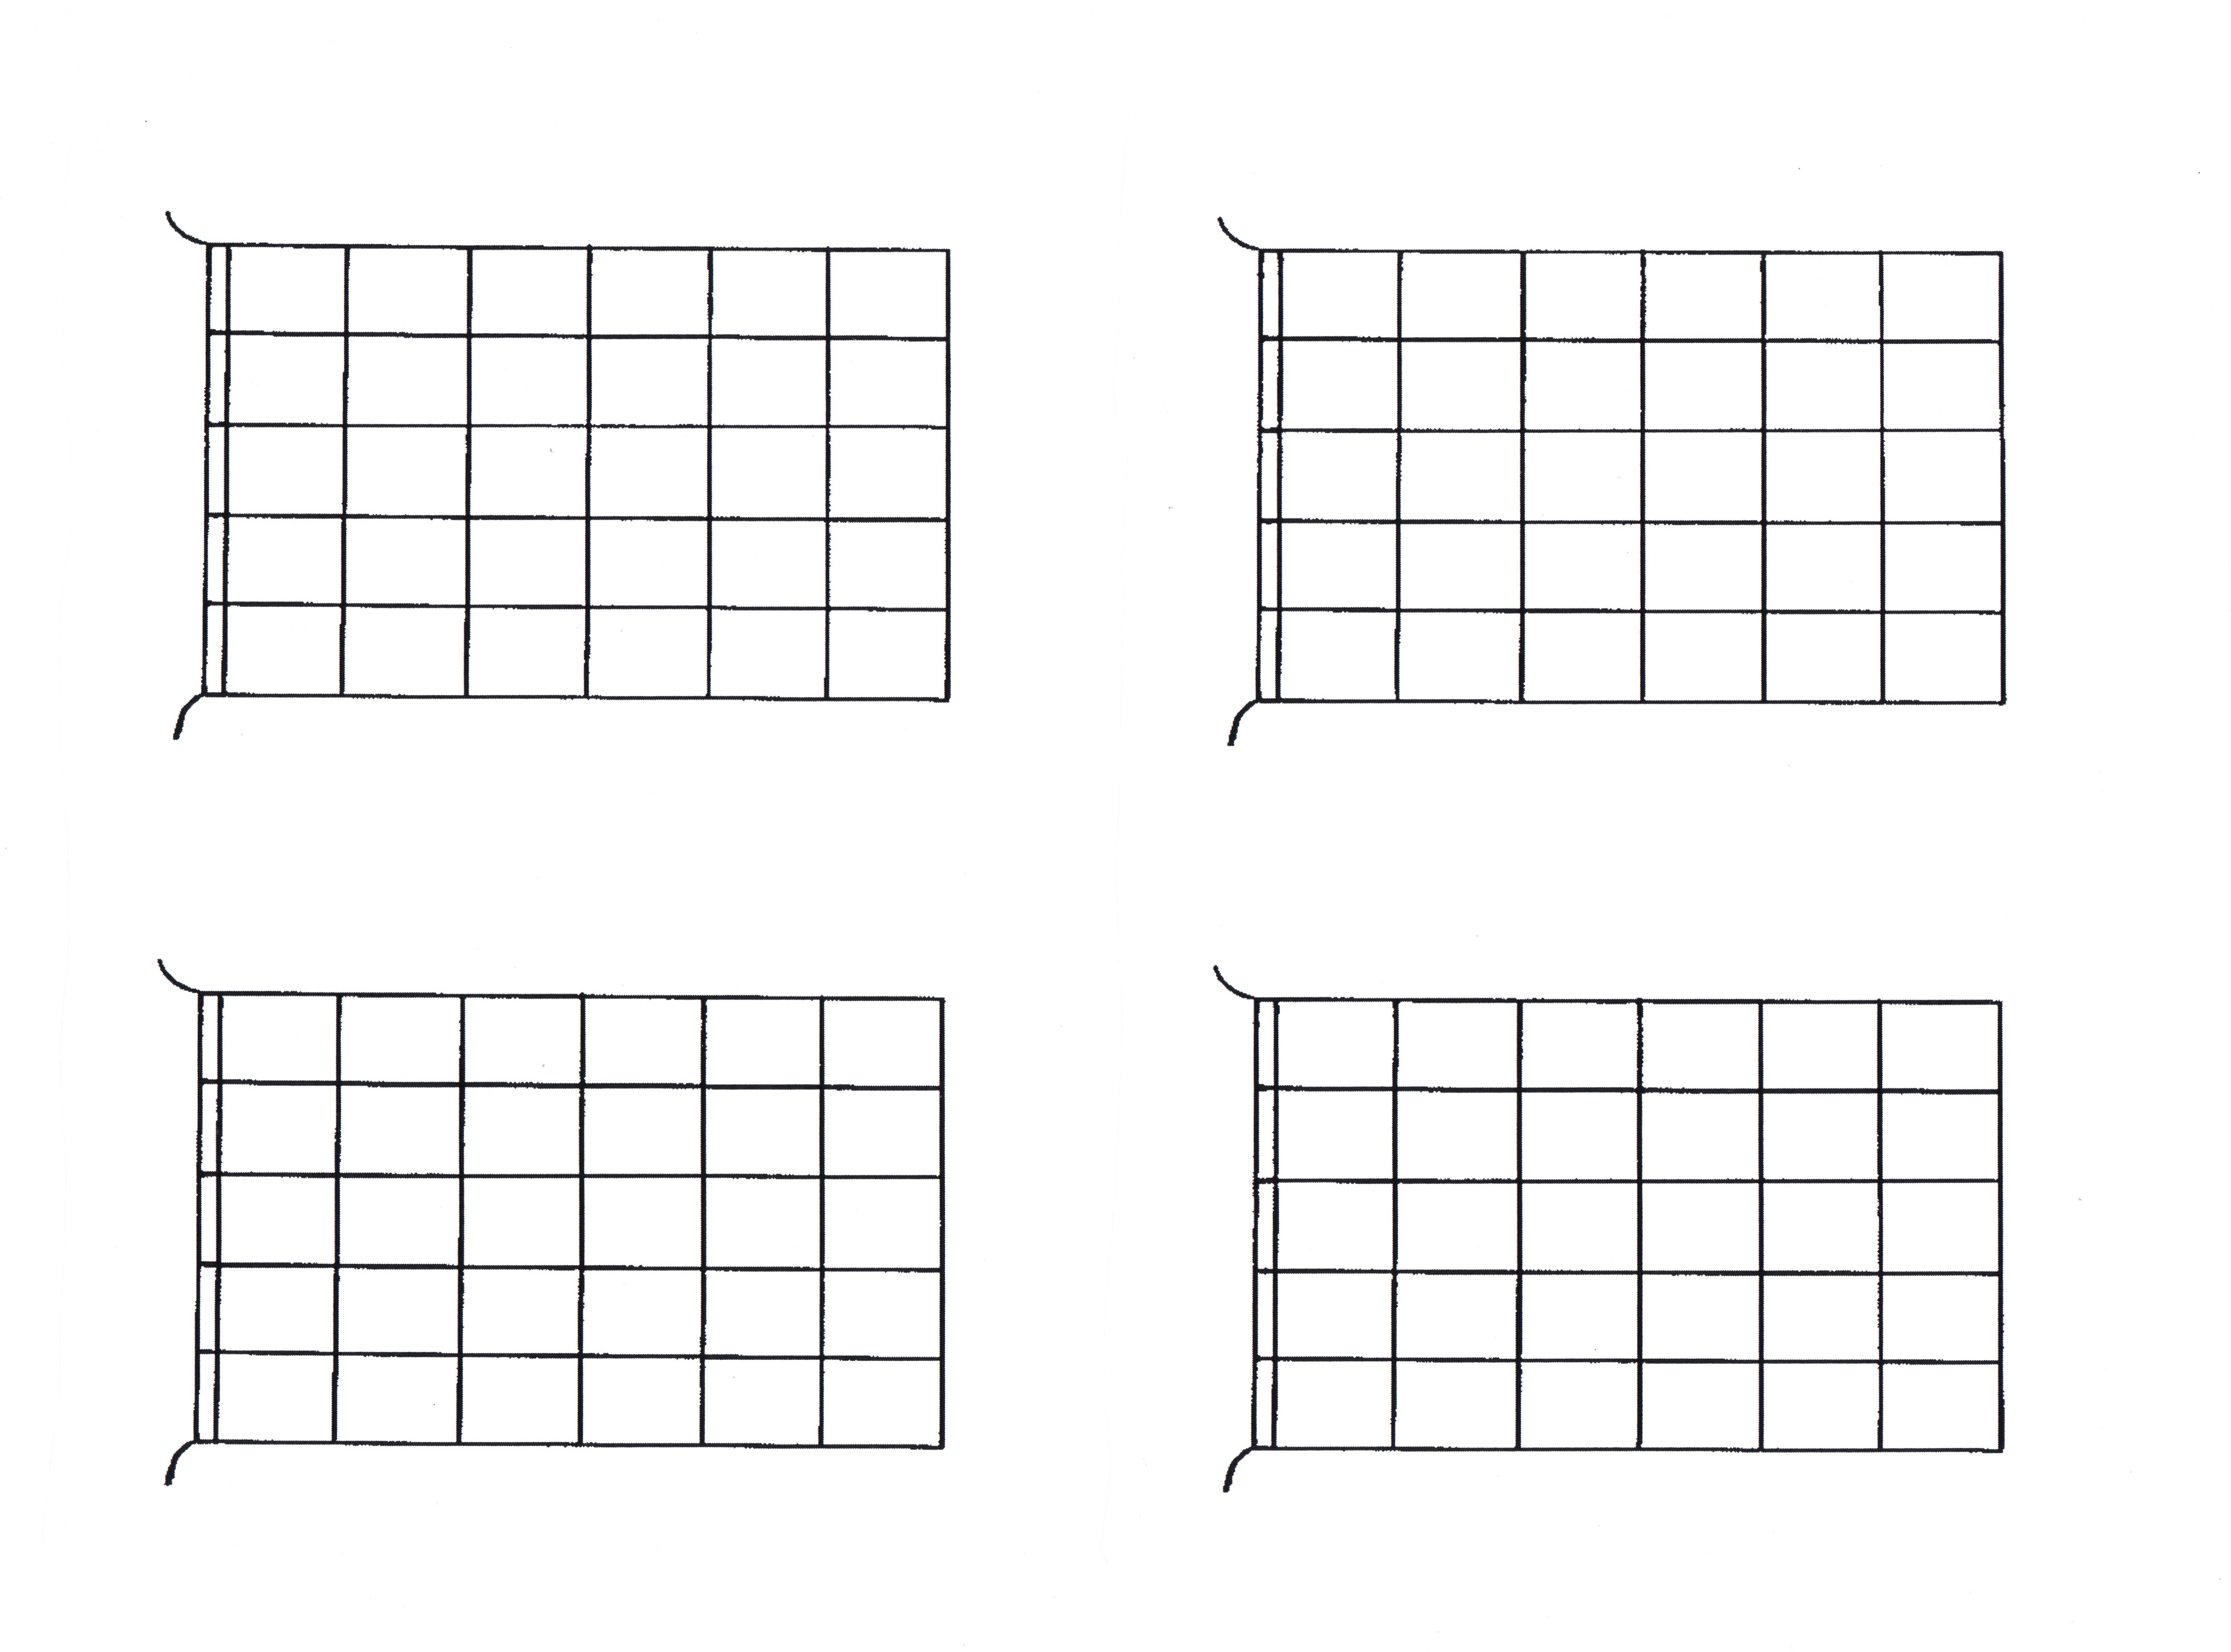 Tabs for Guitar Neck Diagram